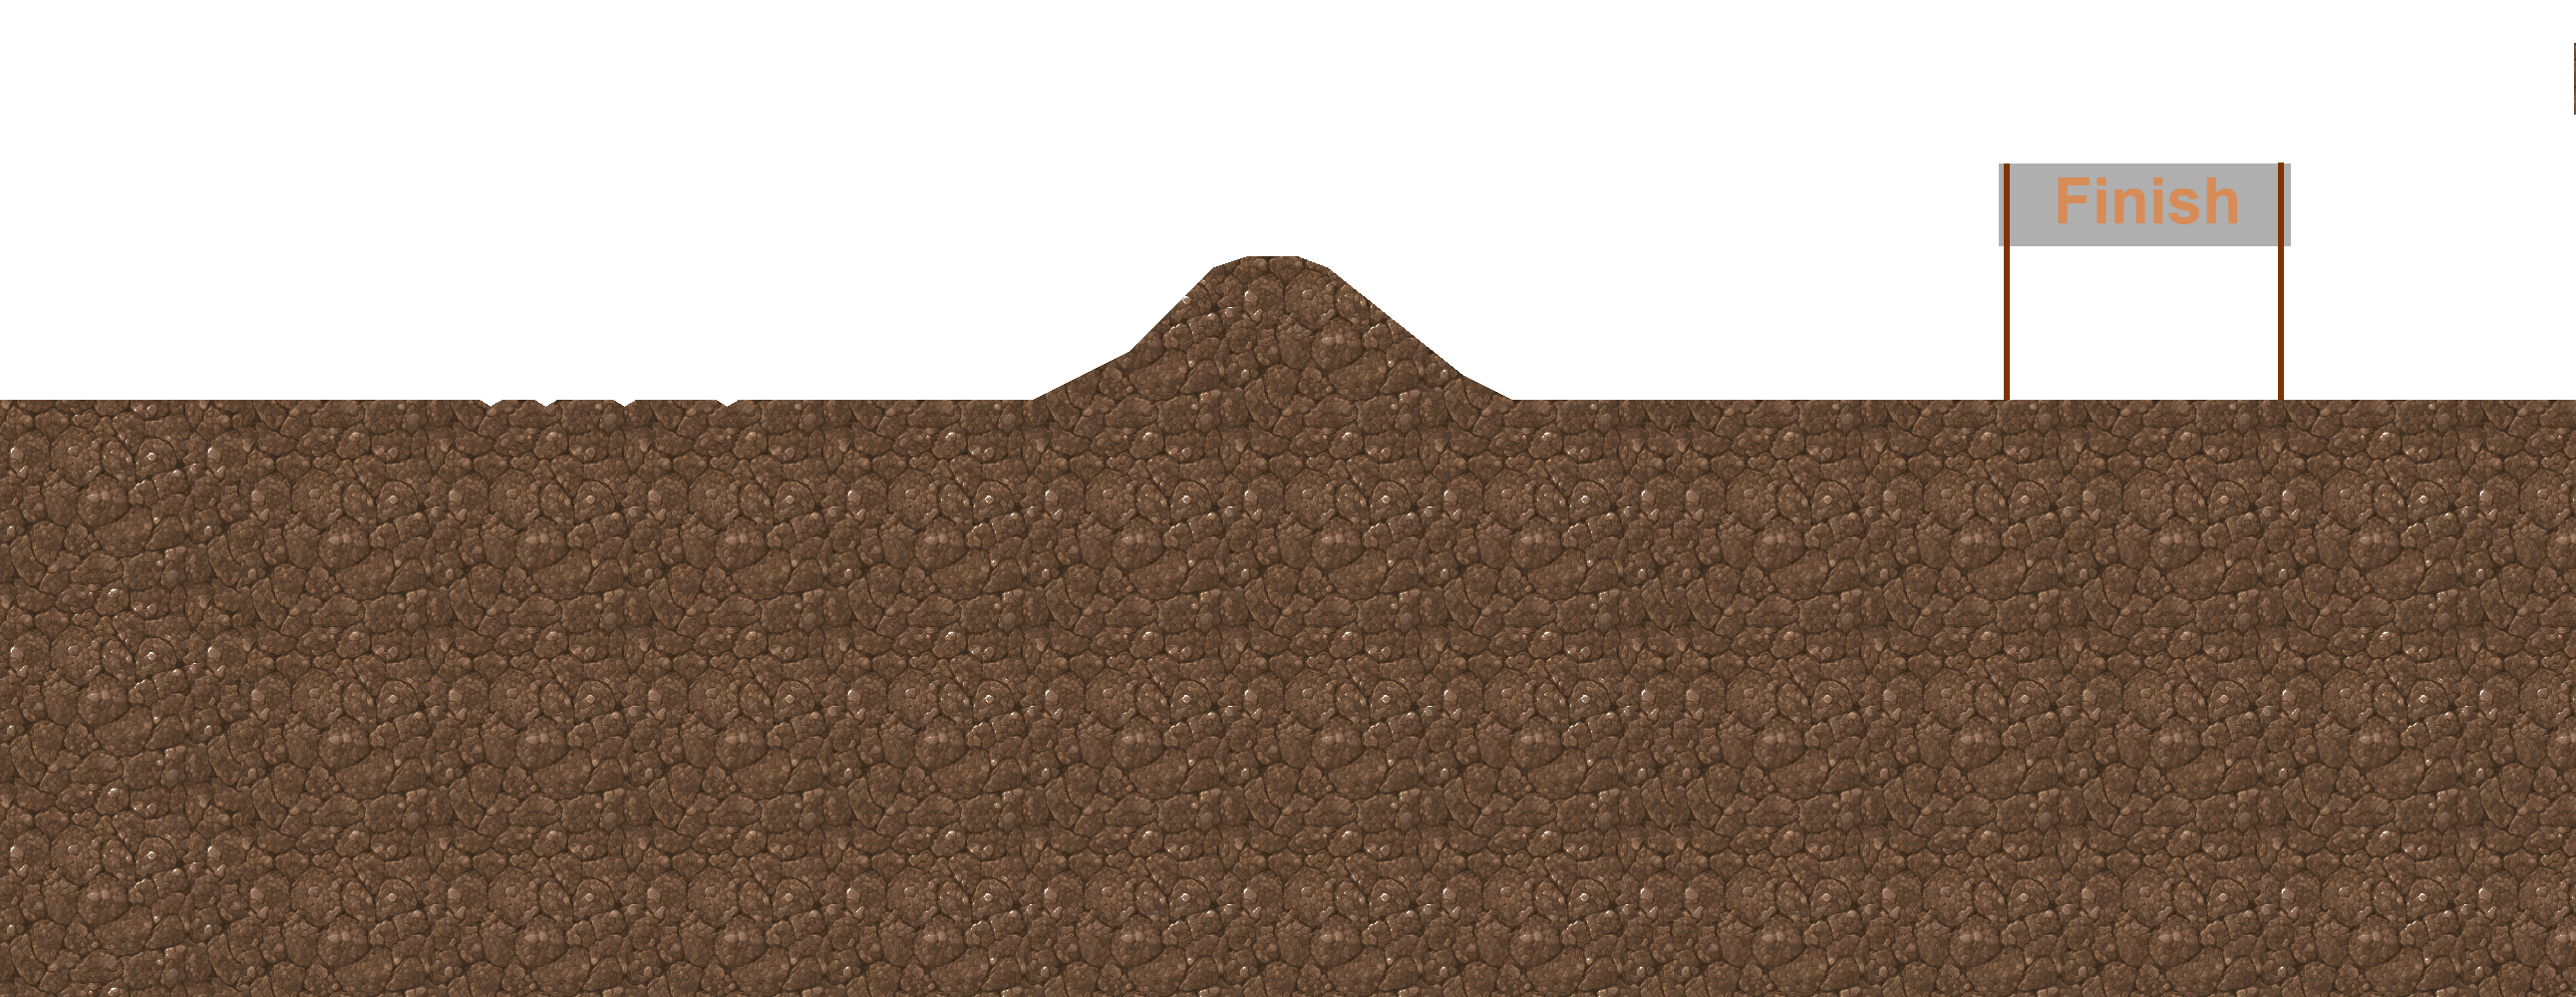 Dirt ground png. Libgdx java texture modificaiton